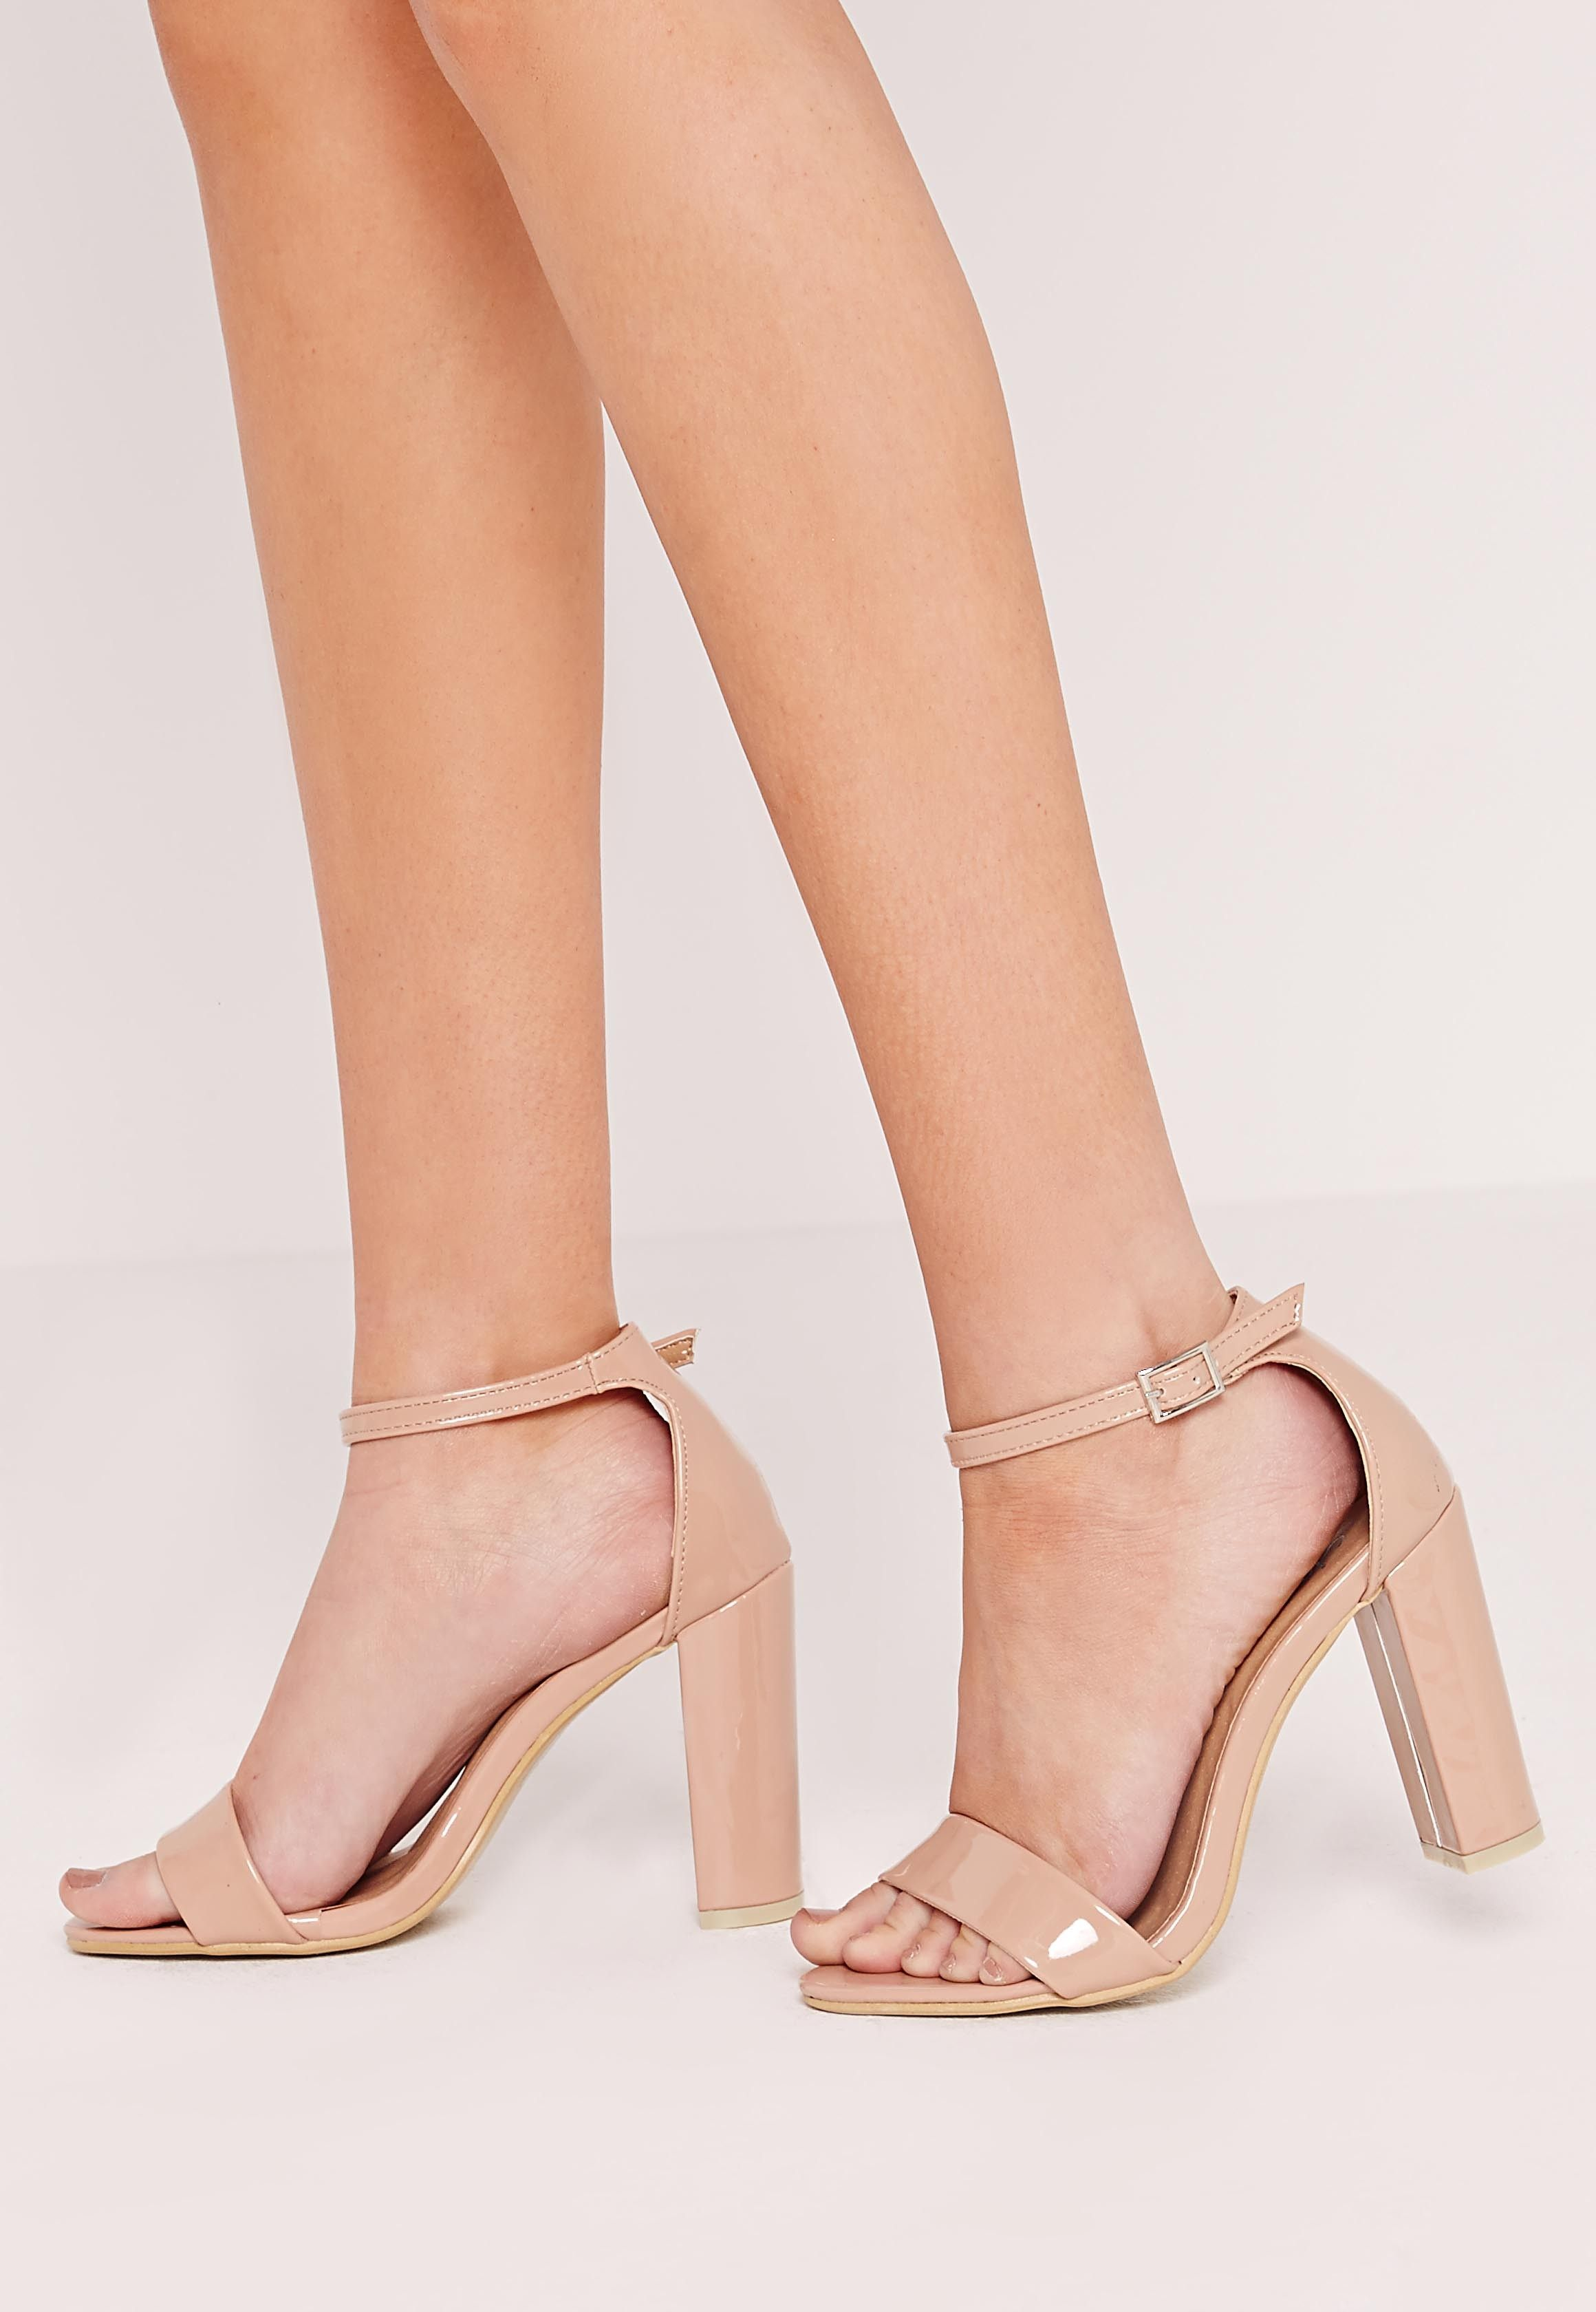 524008d3792 Missguided - Block heel thick strap barely there sandals nude ...